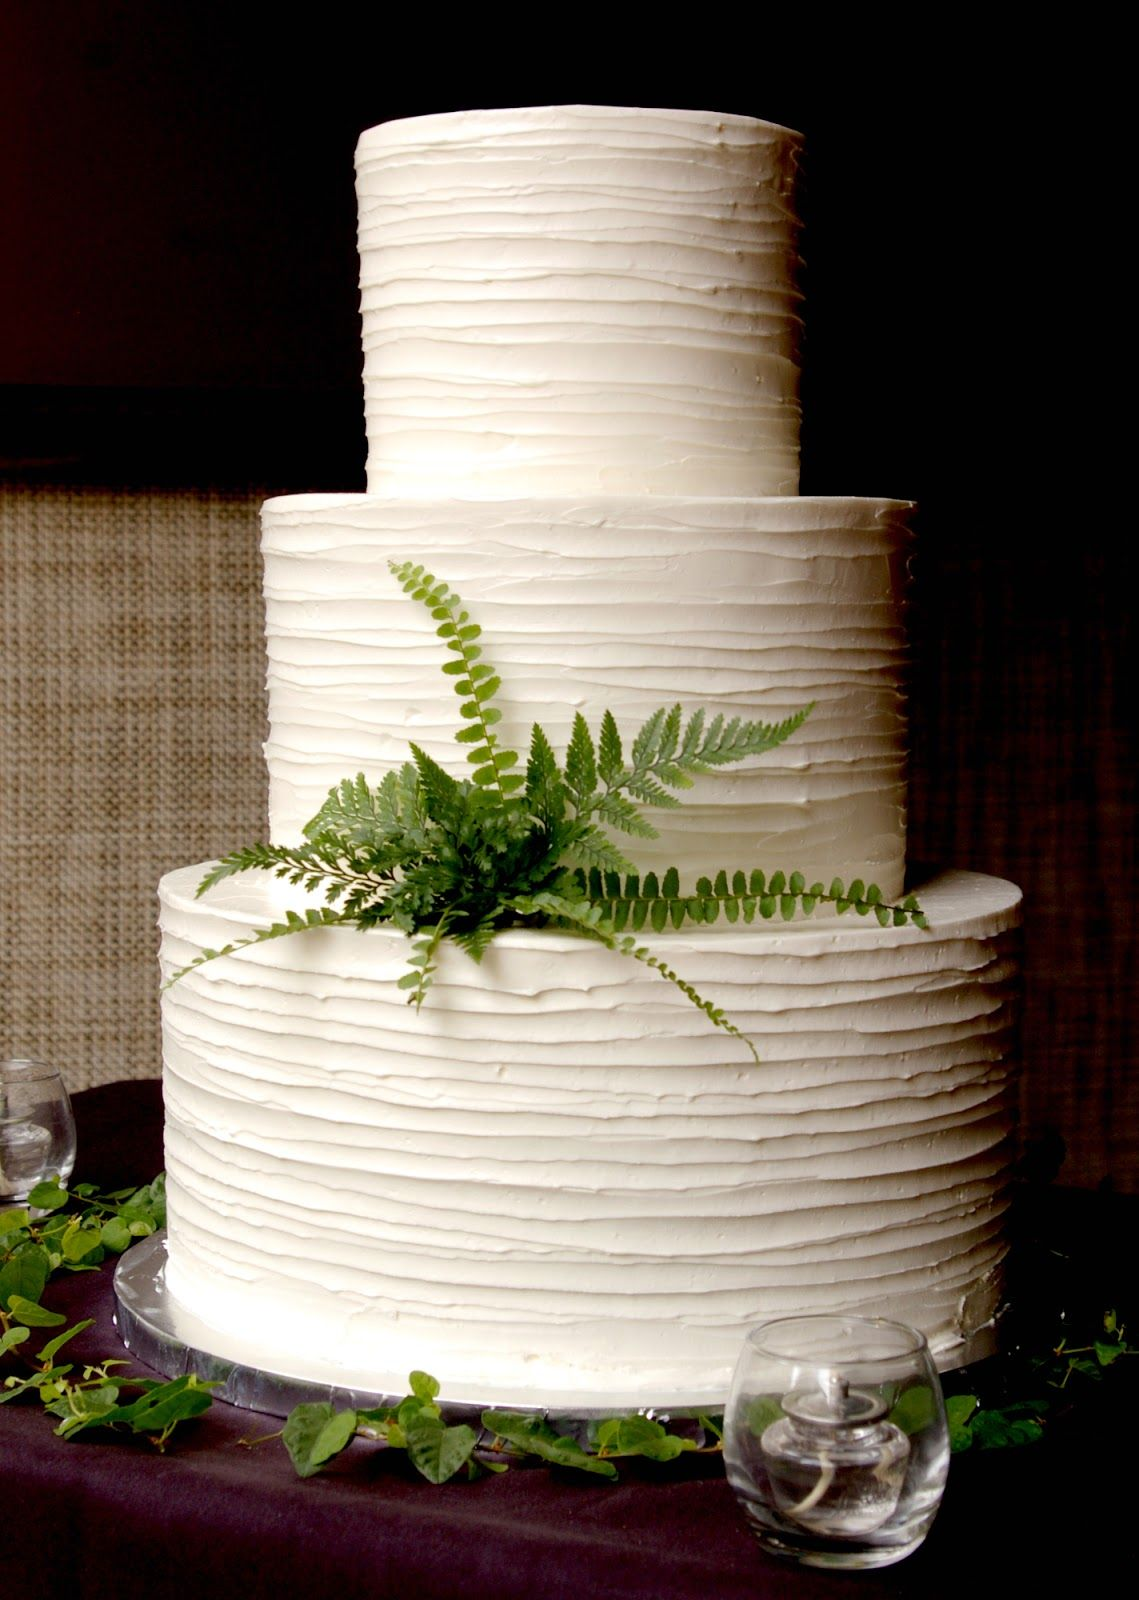 Wedding cake beautiful white wedding cakes in various textures and